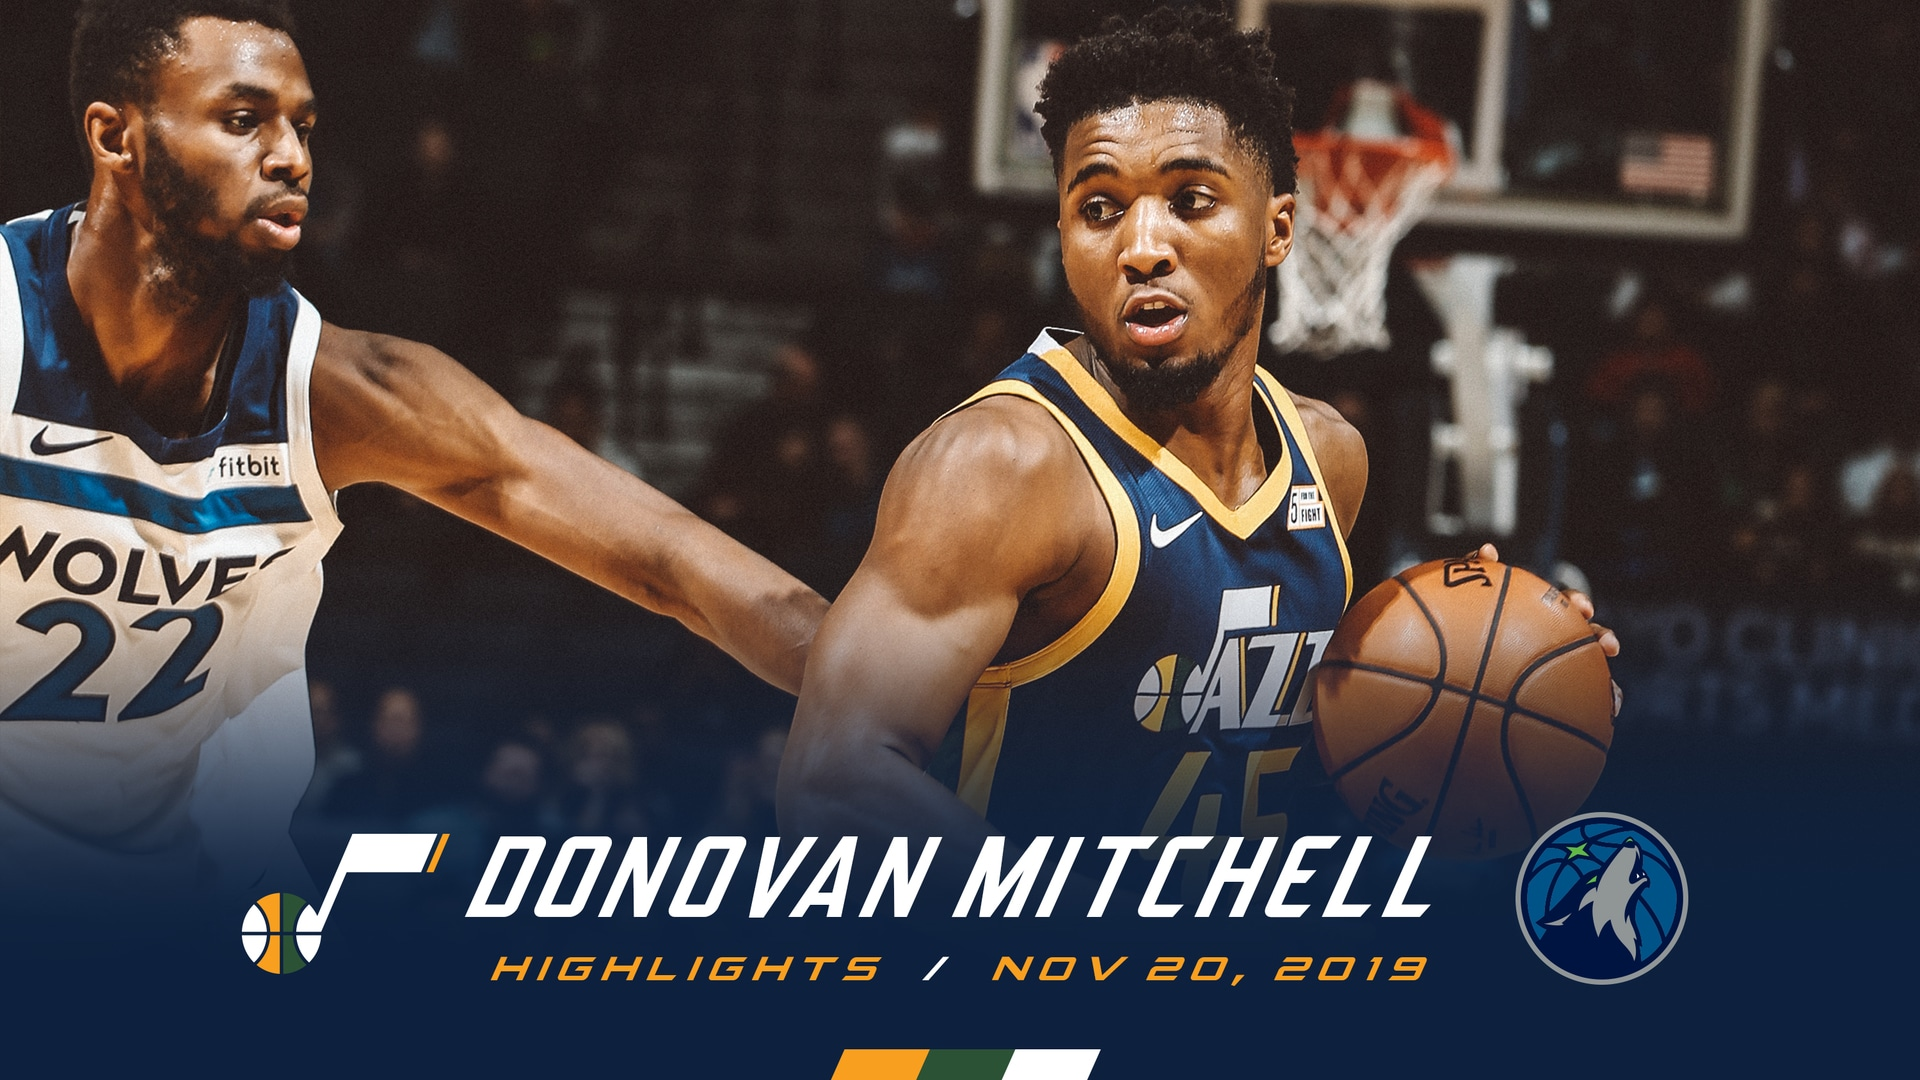 Highlights: Donovan Mitchell—26 points, 5 3pm